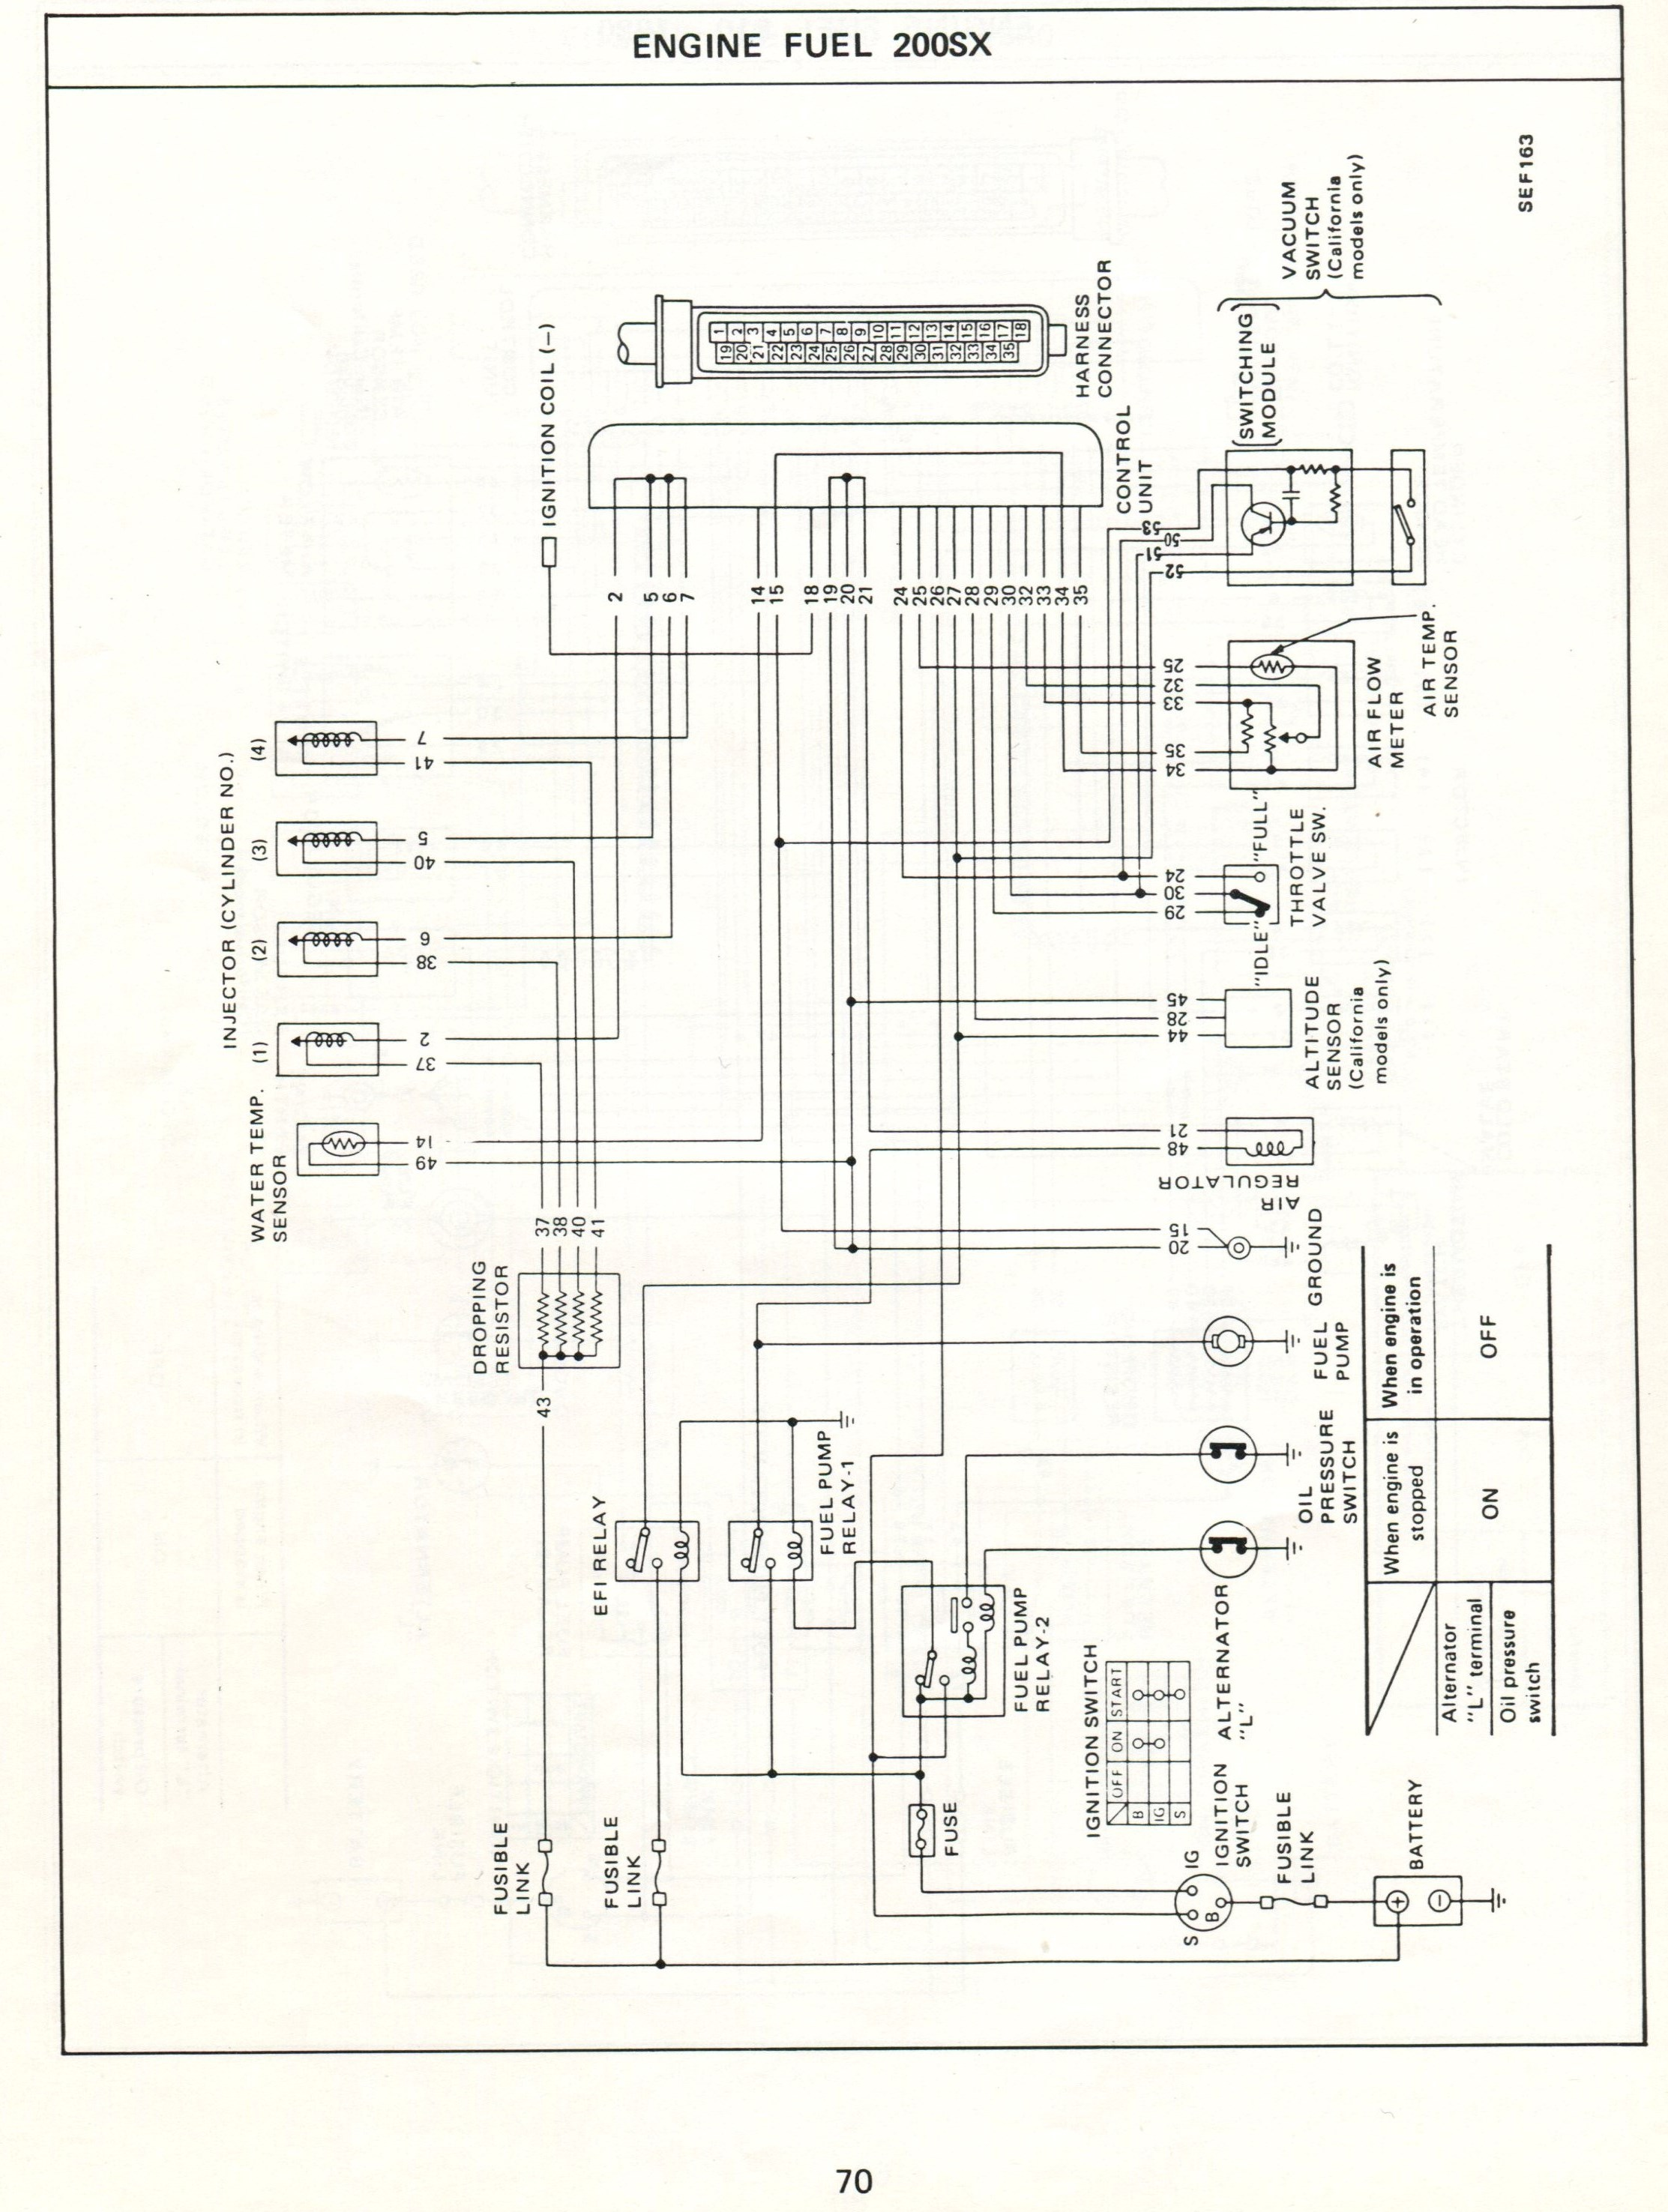 Datsun 280z Fuel Pump Wiring Diagram